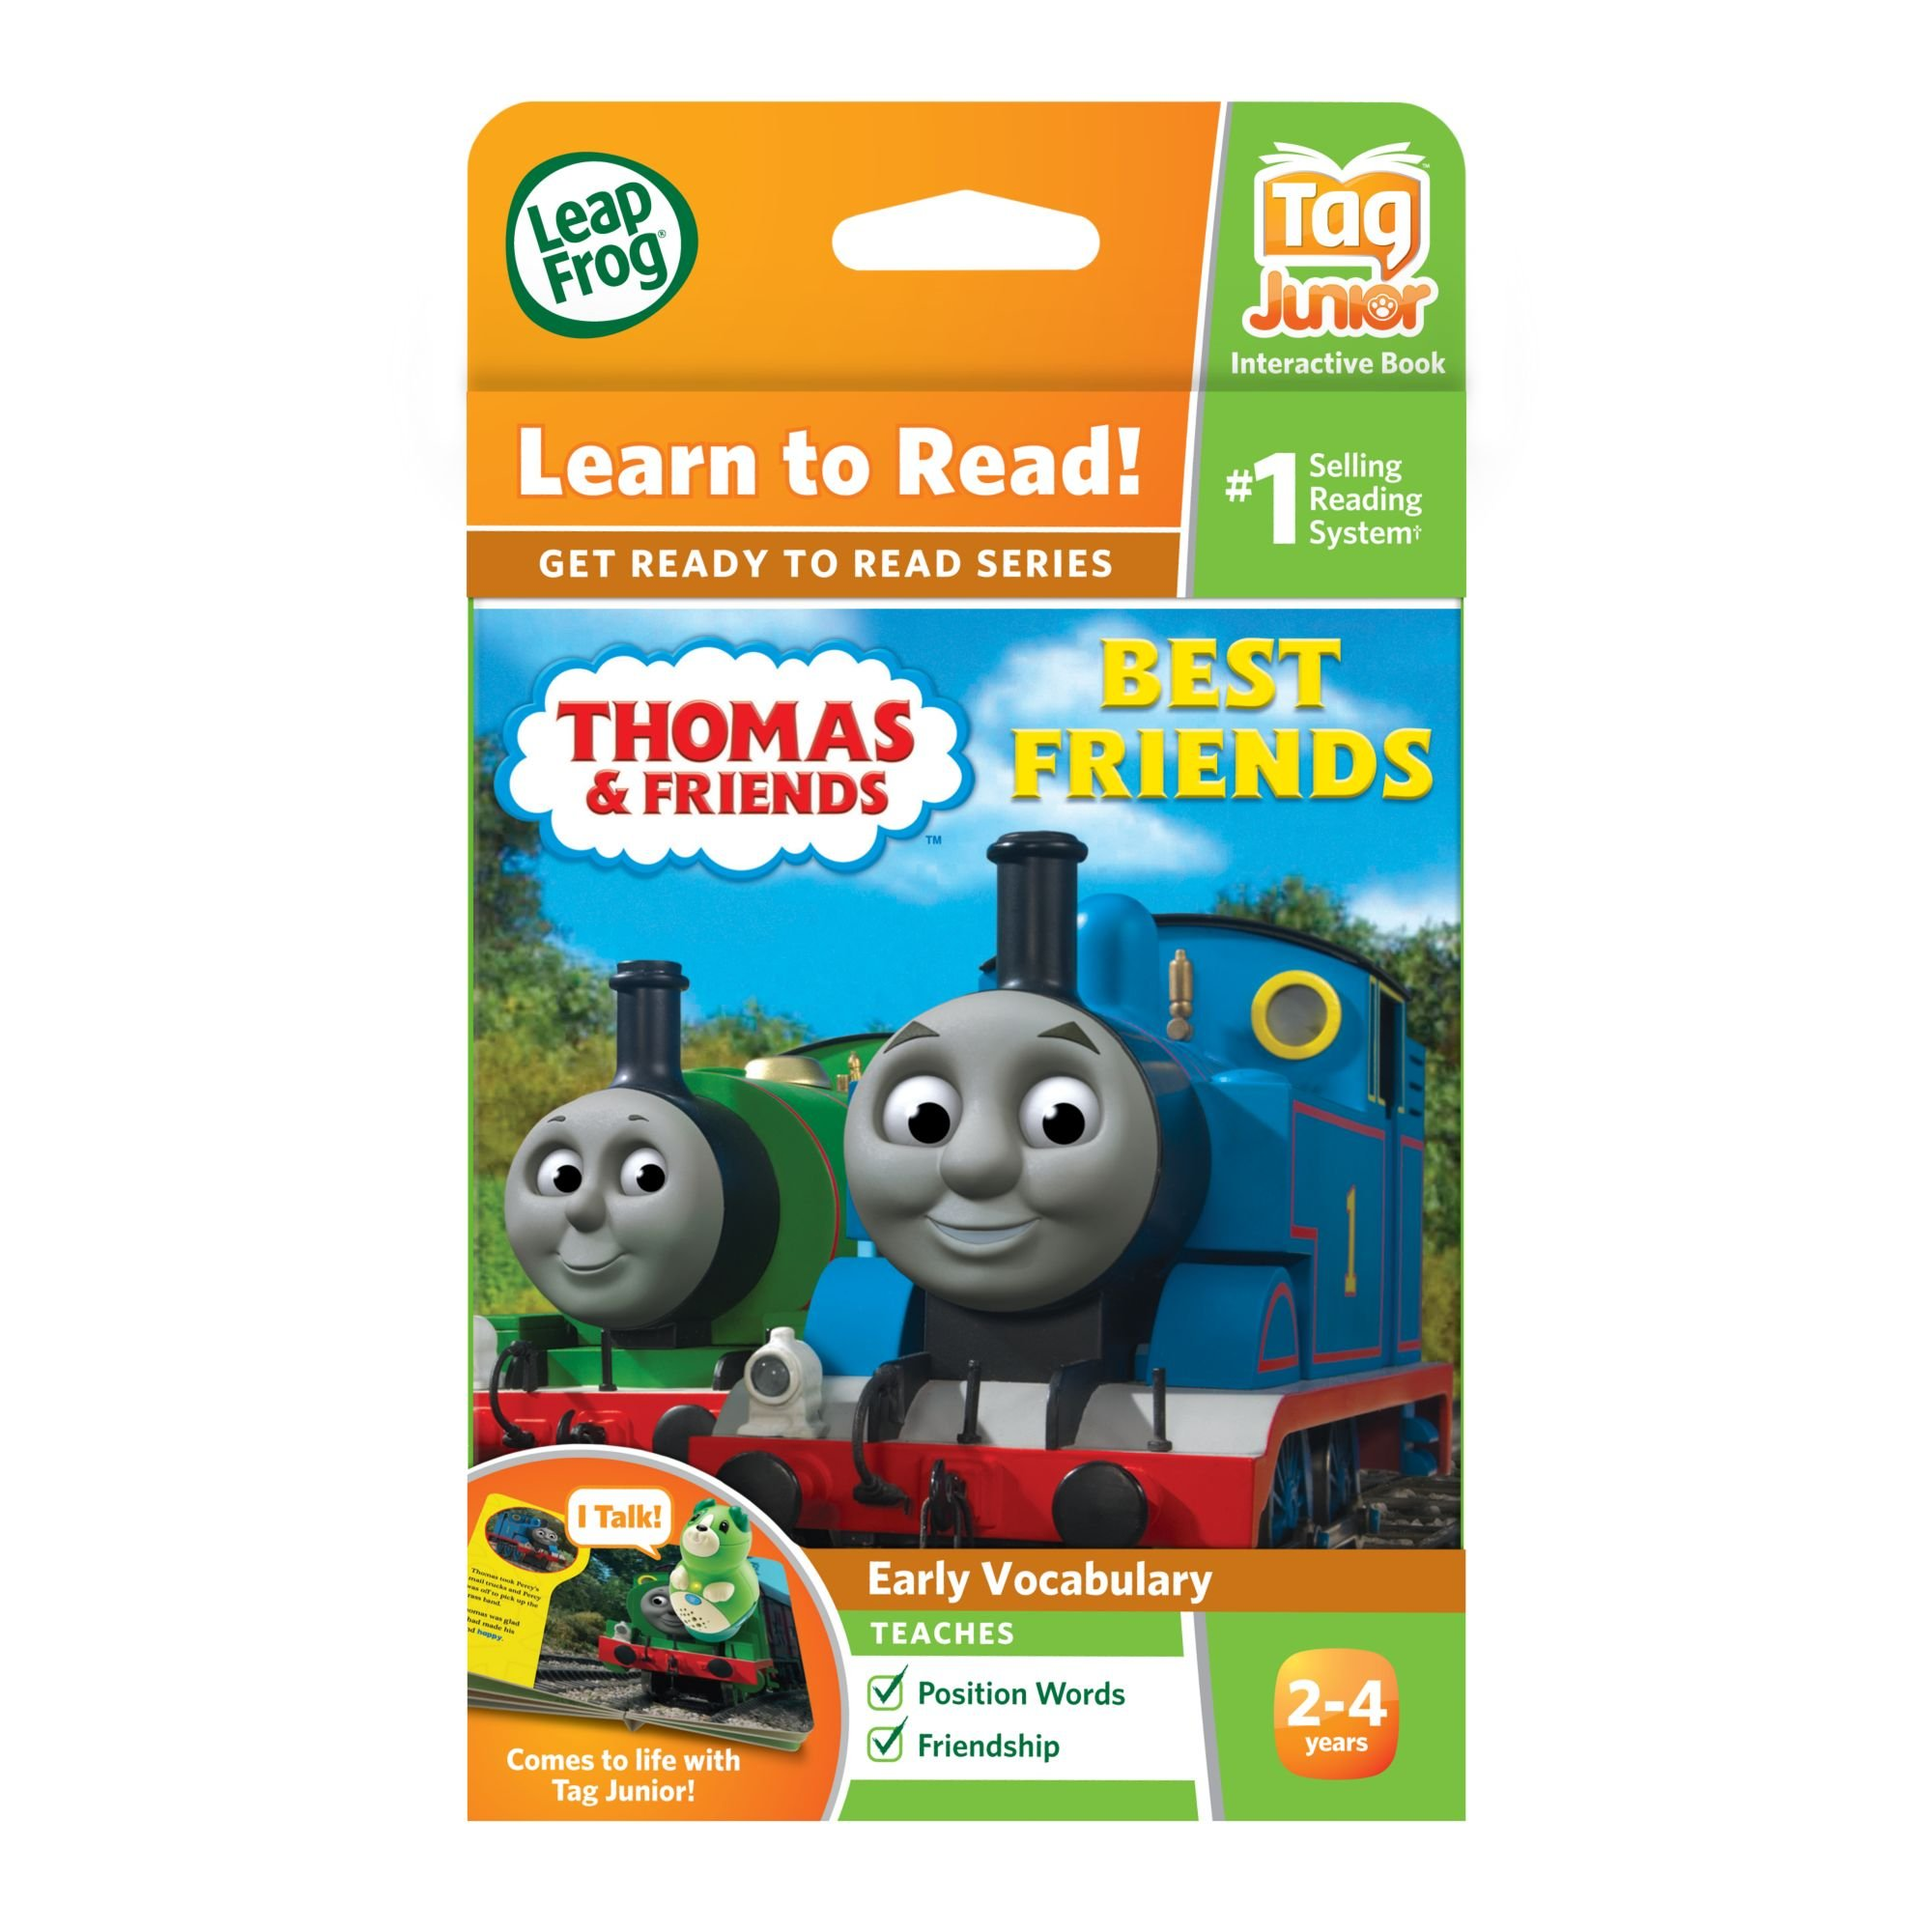 LeapFrog LeapReader Junior Book: Thomas & Friends: Best Friends (works with Tag Junior) by LeapFrog (Image #4)